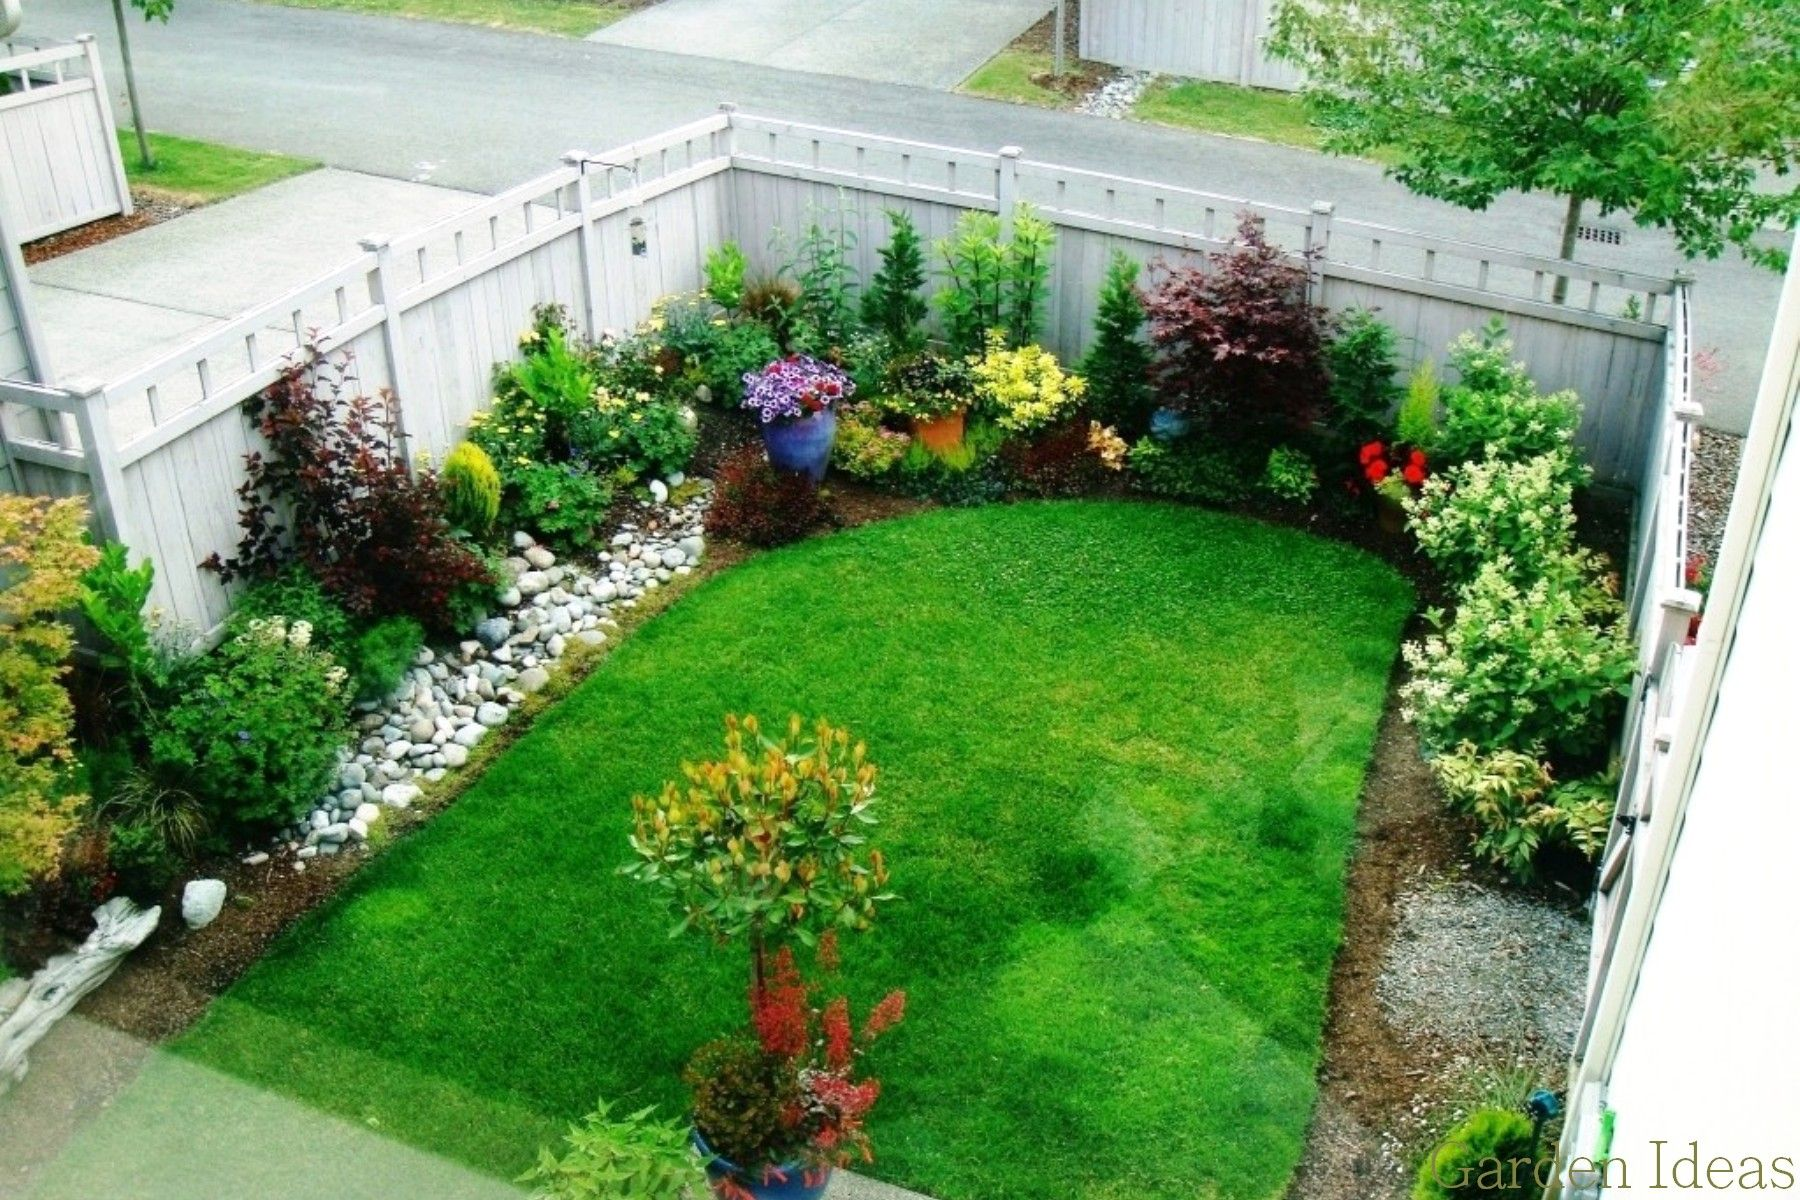 Wonderful home garden ideas Photo Small Garden Pictures